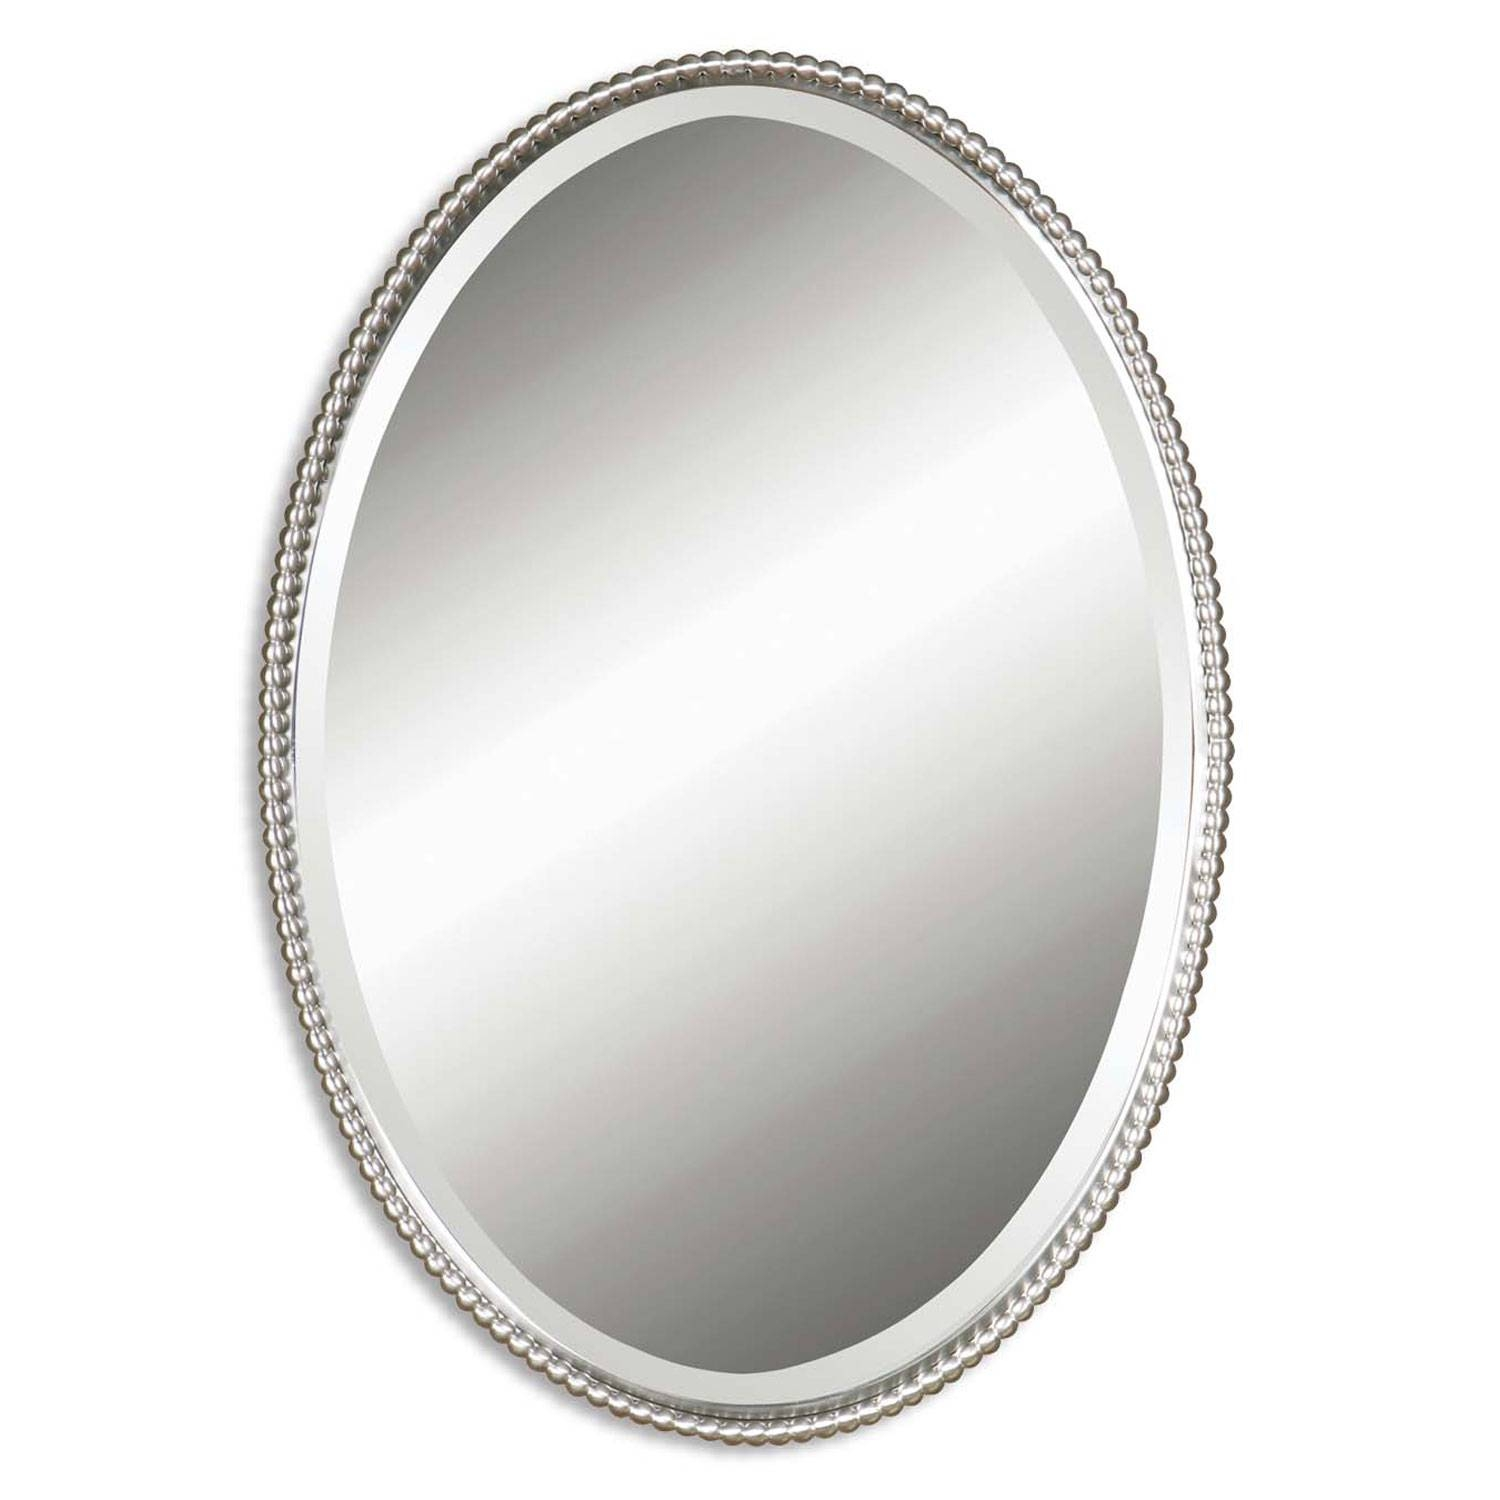 Sherise Brushed Nickel Oval Mirror Uttermost Wall Mirror Mirrors with Large Oval Mirrors (Image 23 of 25)